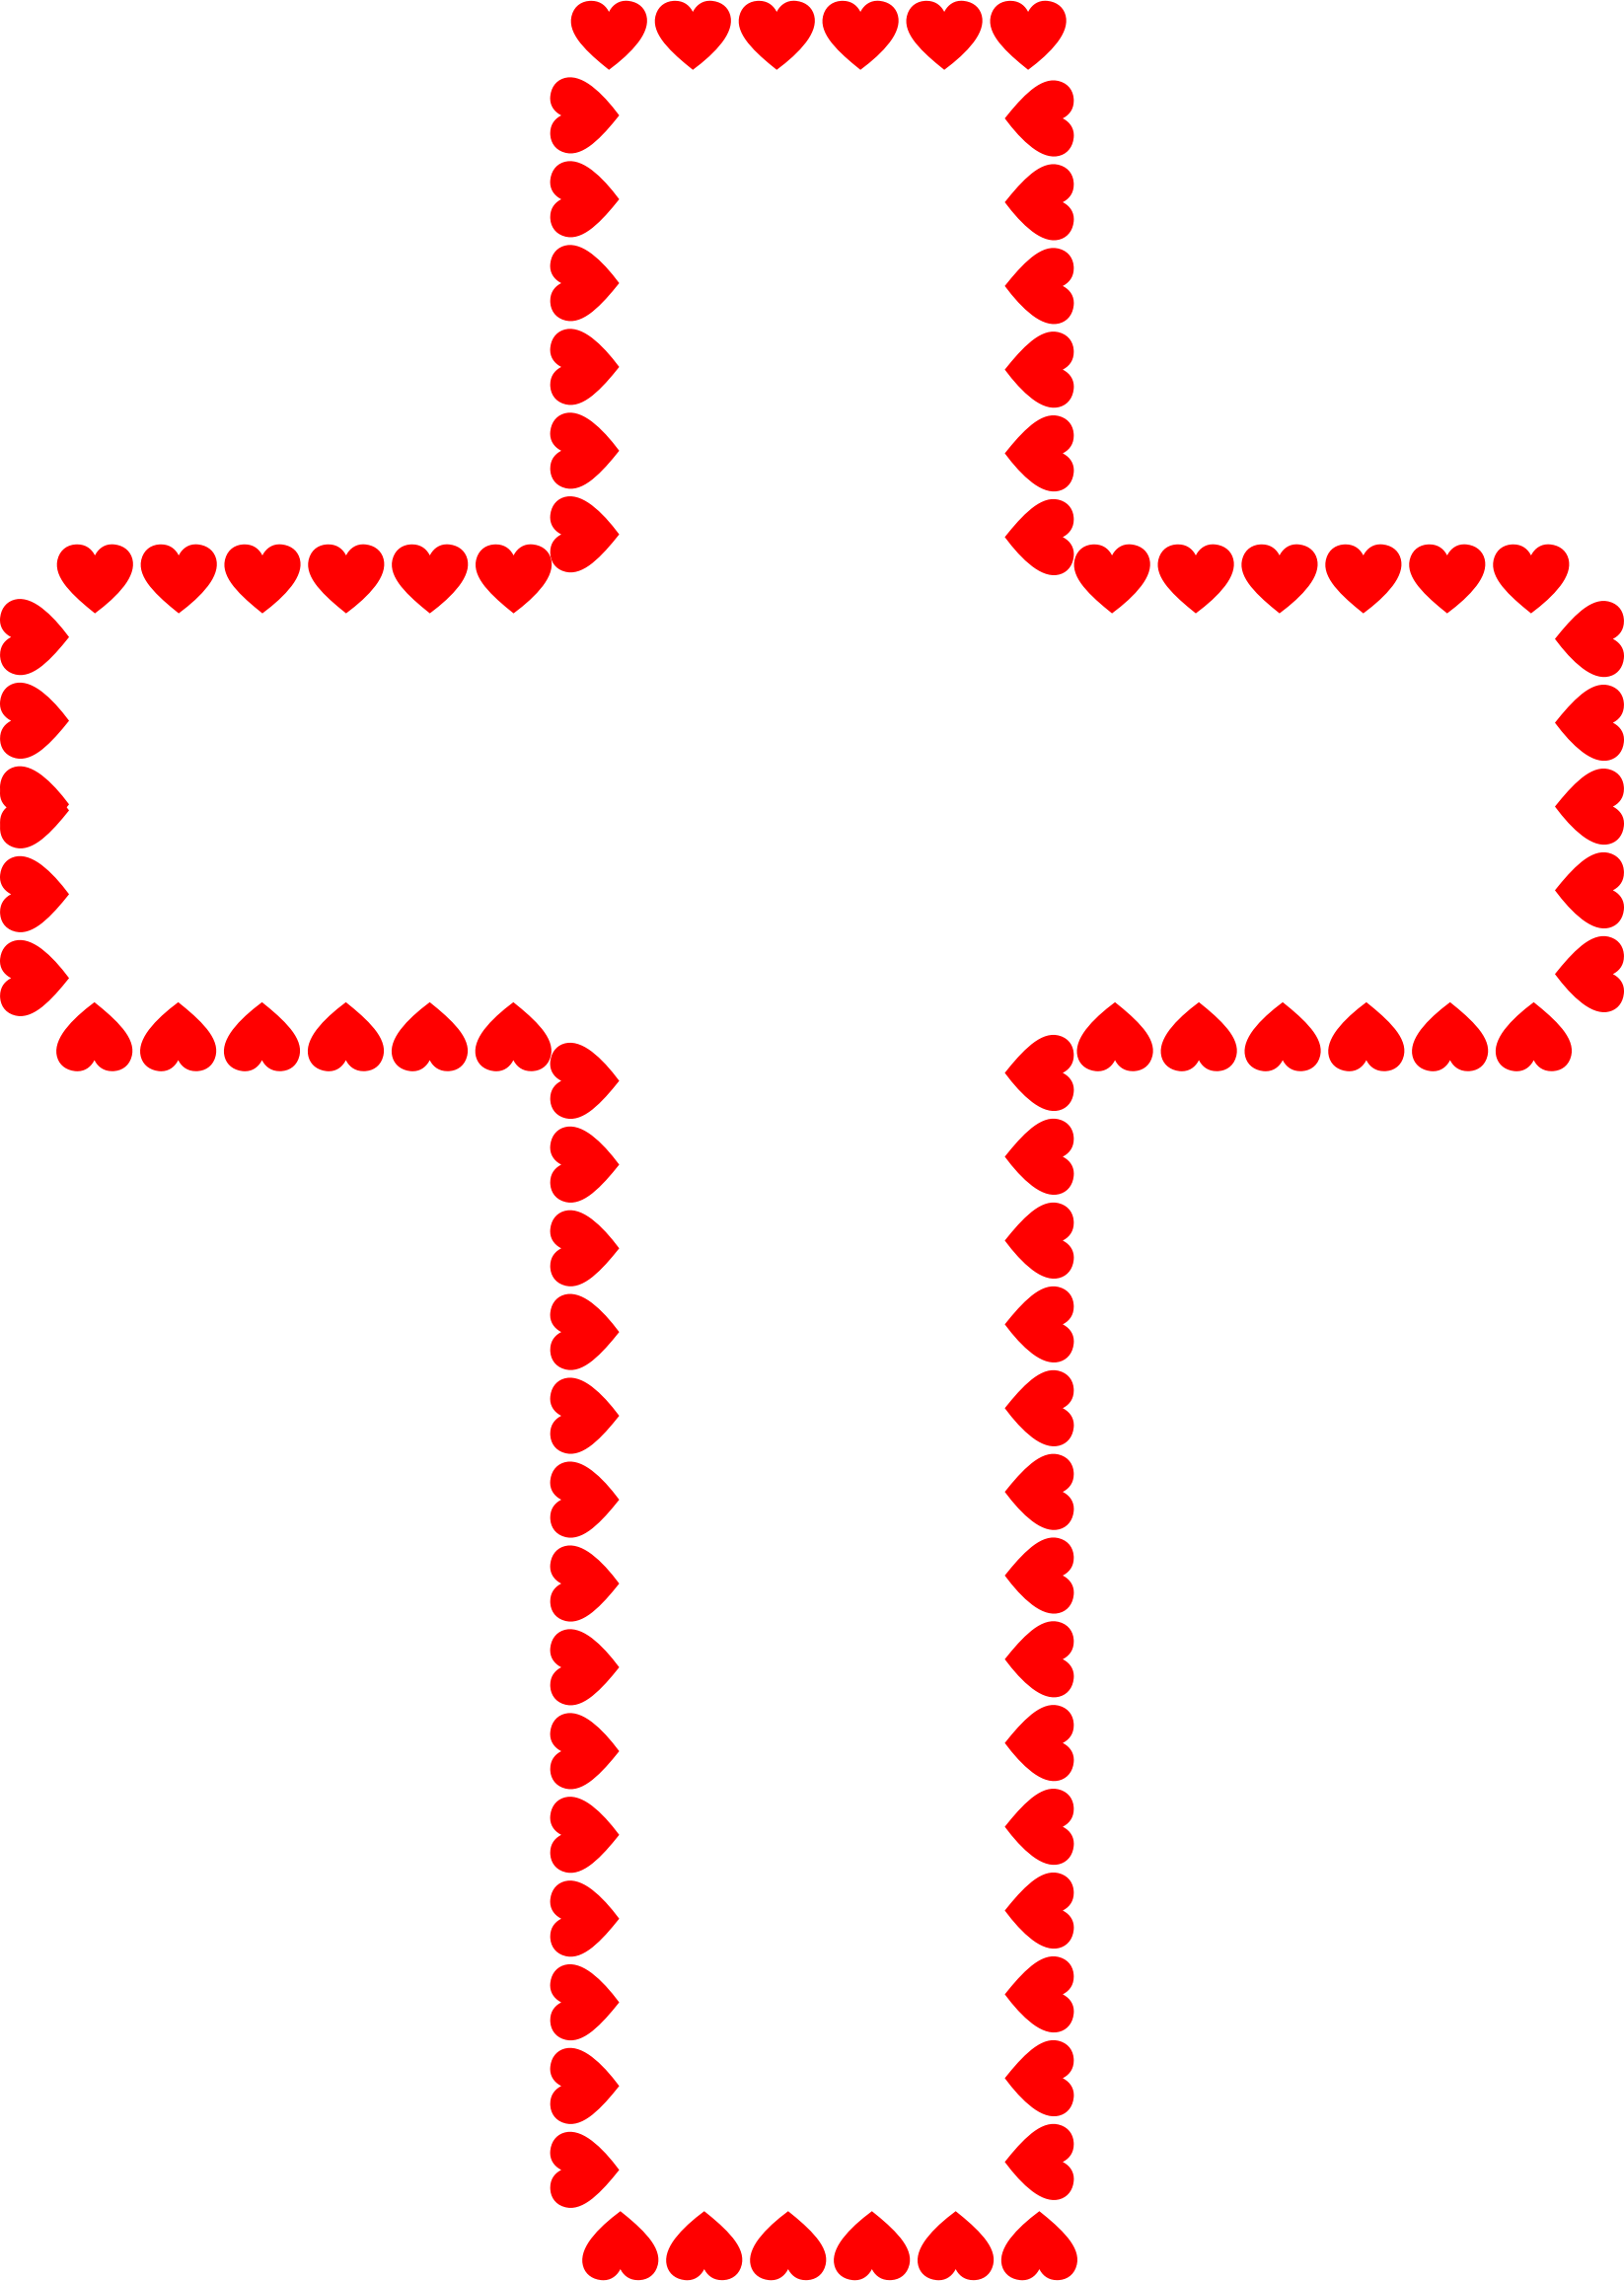 Cross with heart image black and white download png files, Free CLip.